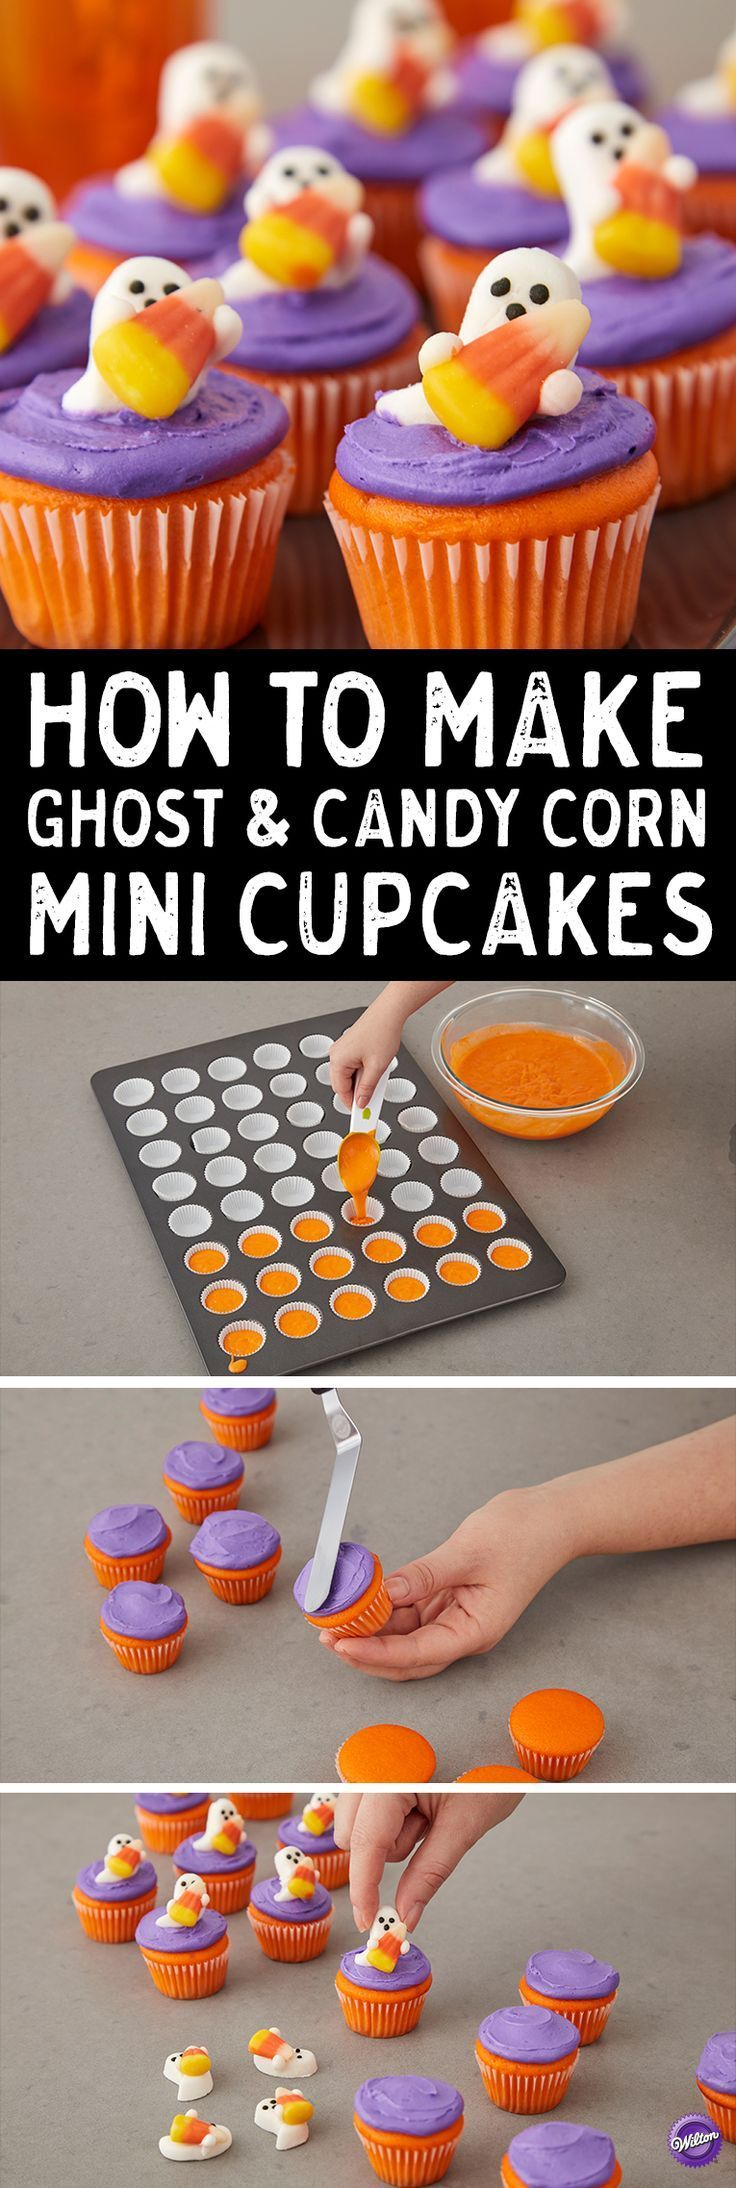 Top 25+ best Halloween birthday cakes ideas on Pinterest | Pumpkin ...